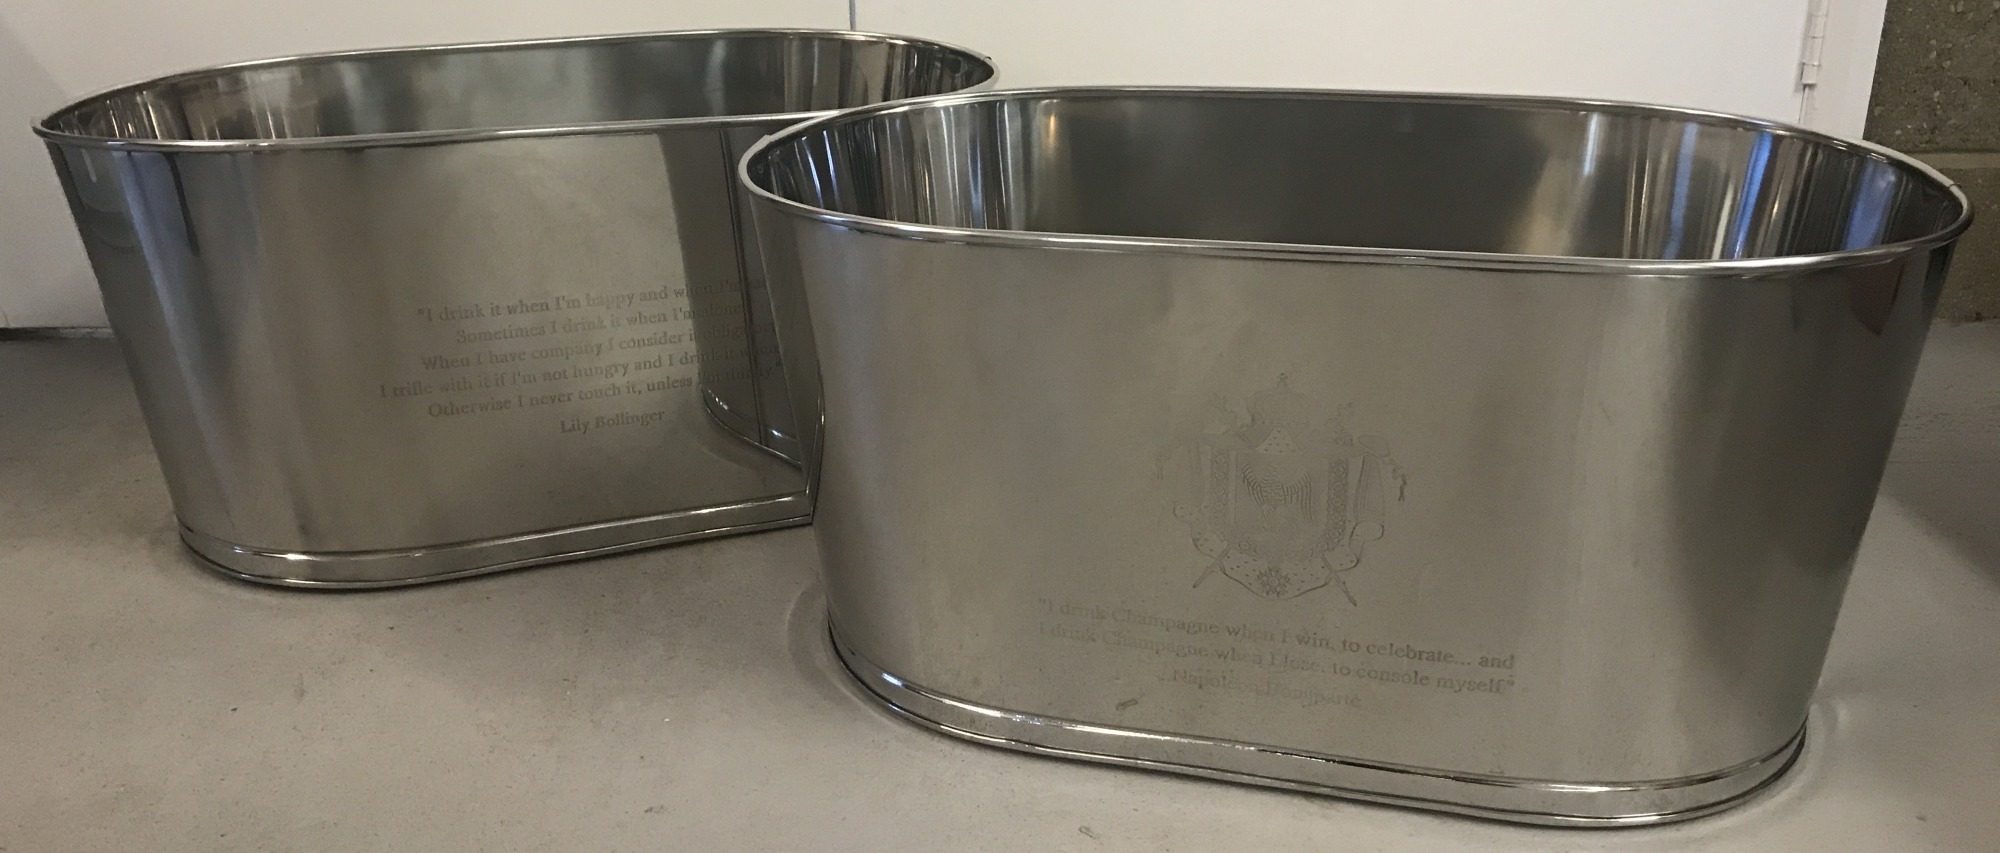 A pair of large Bollinger Champagne buckets with engraved details to sides.